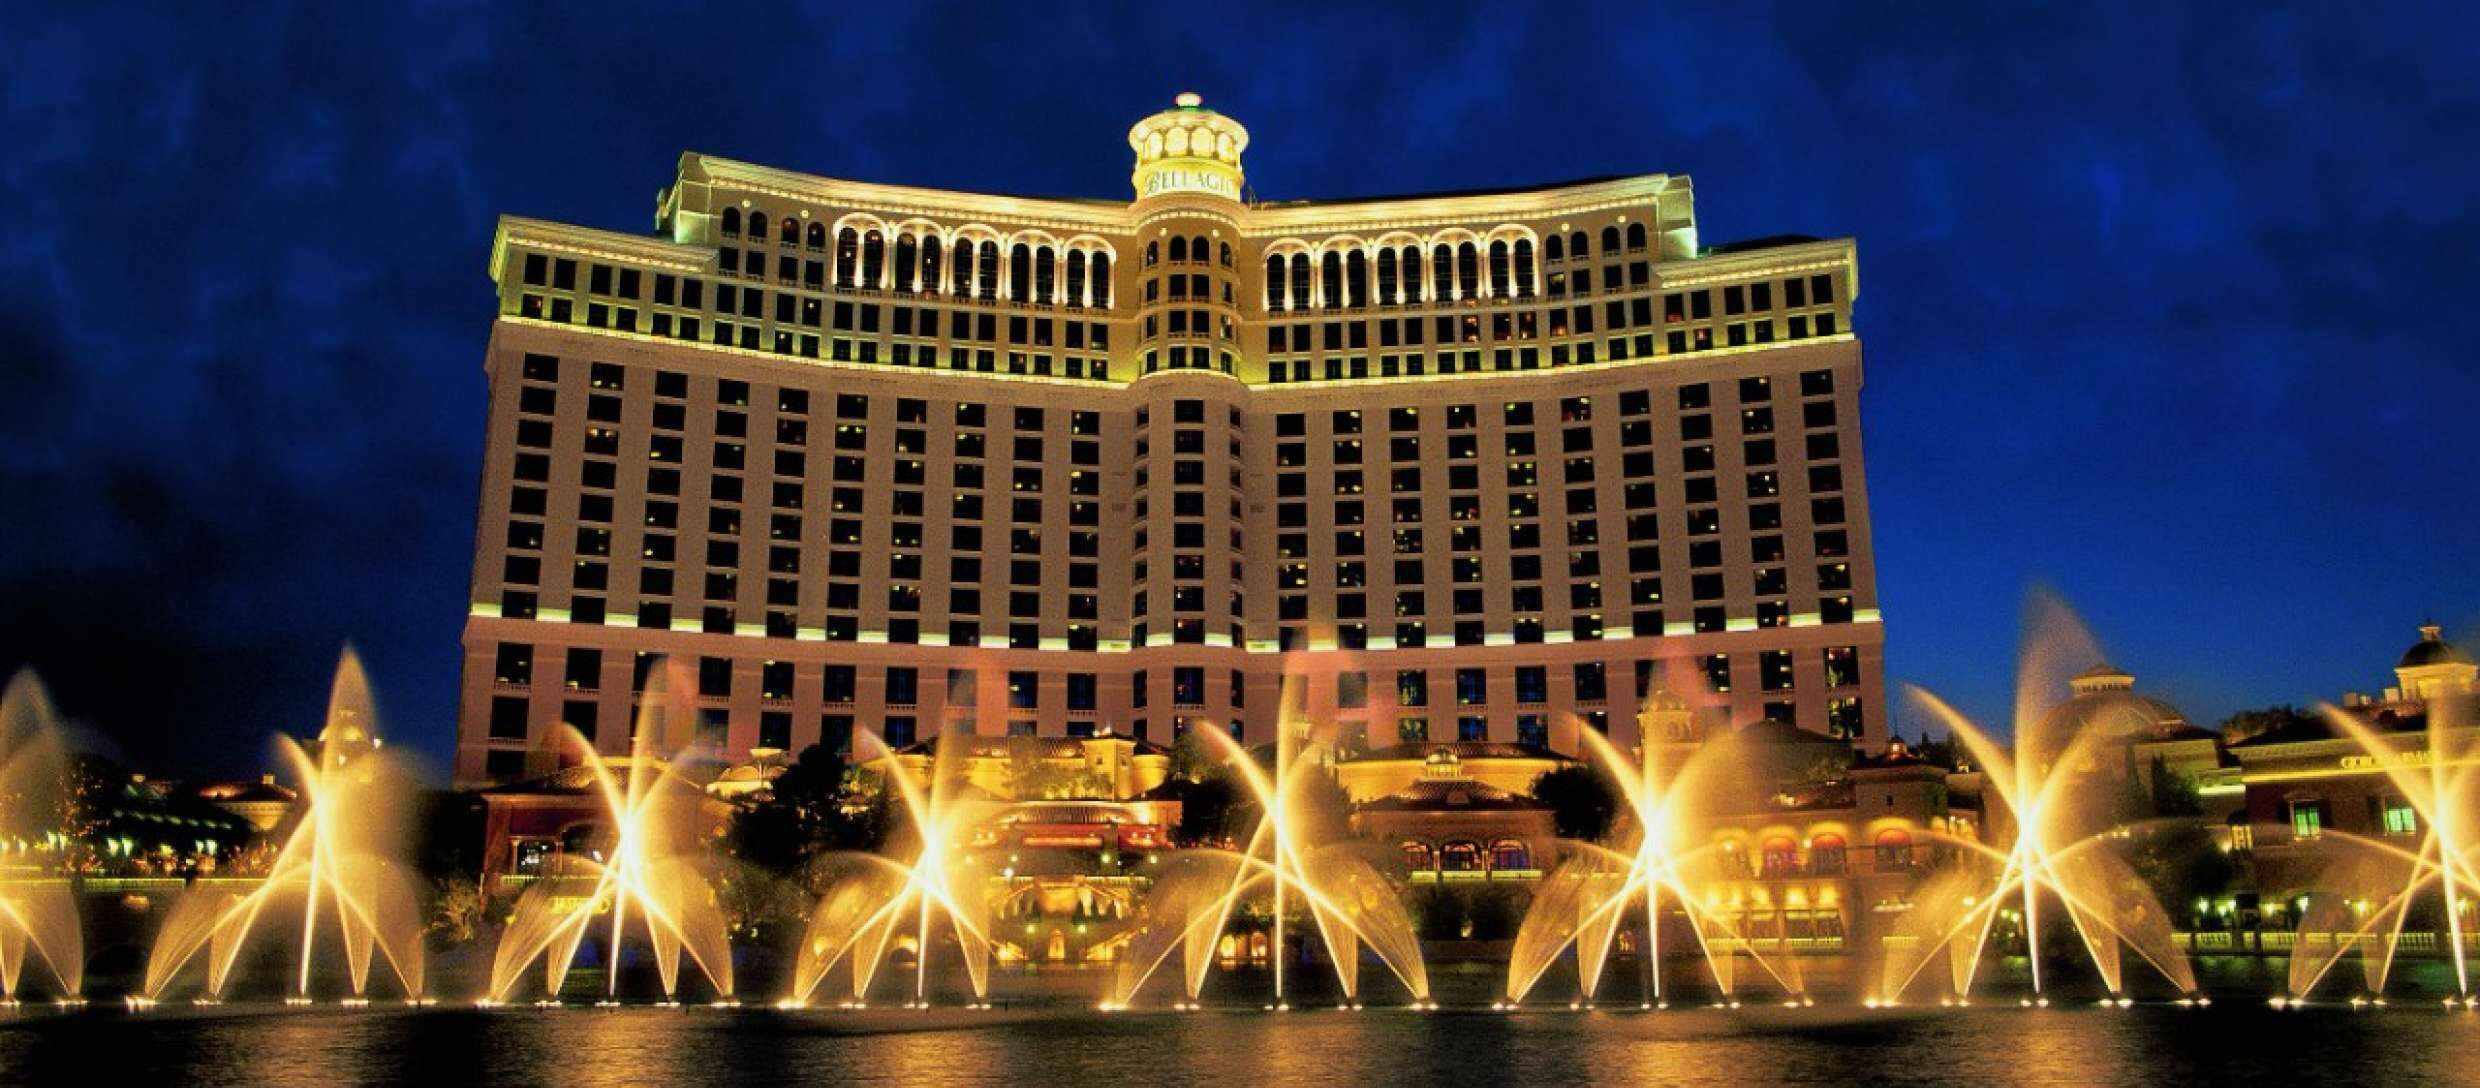 The exterior of a hotel with fountains